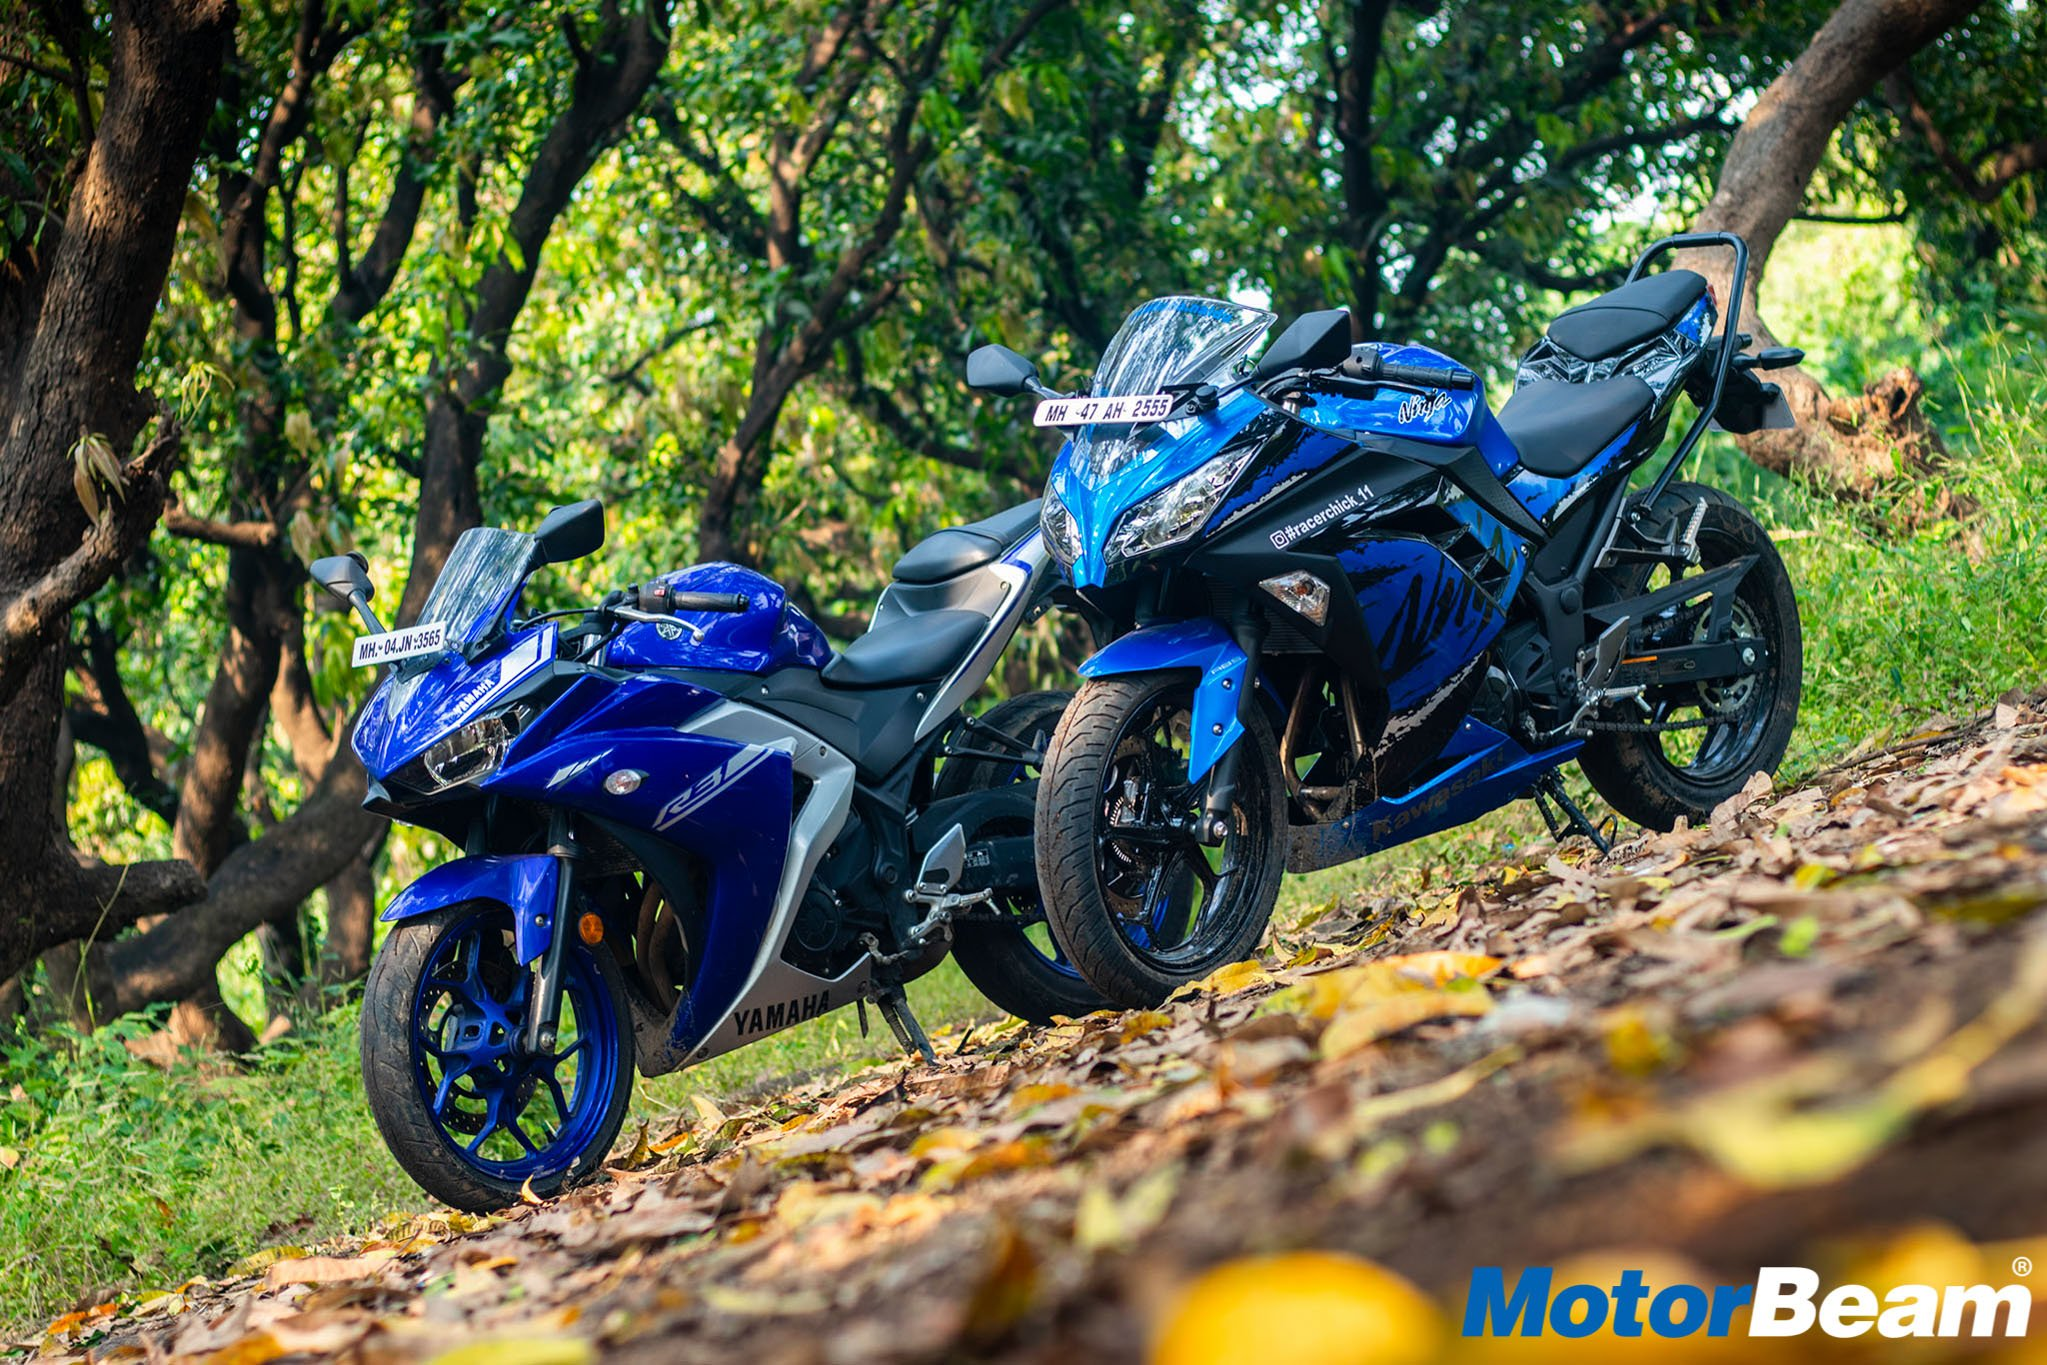 Yamaha R3 vs Kawasaki Ninja 300 Comparison Review